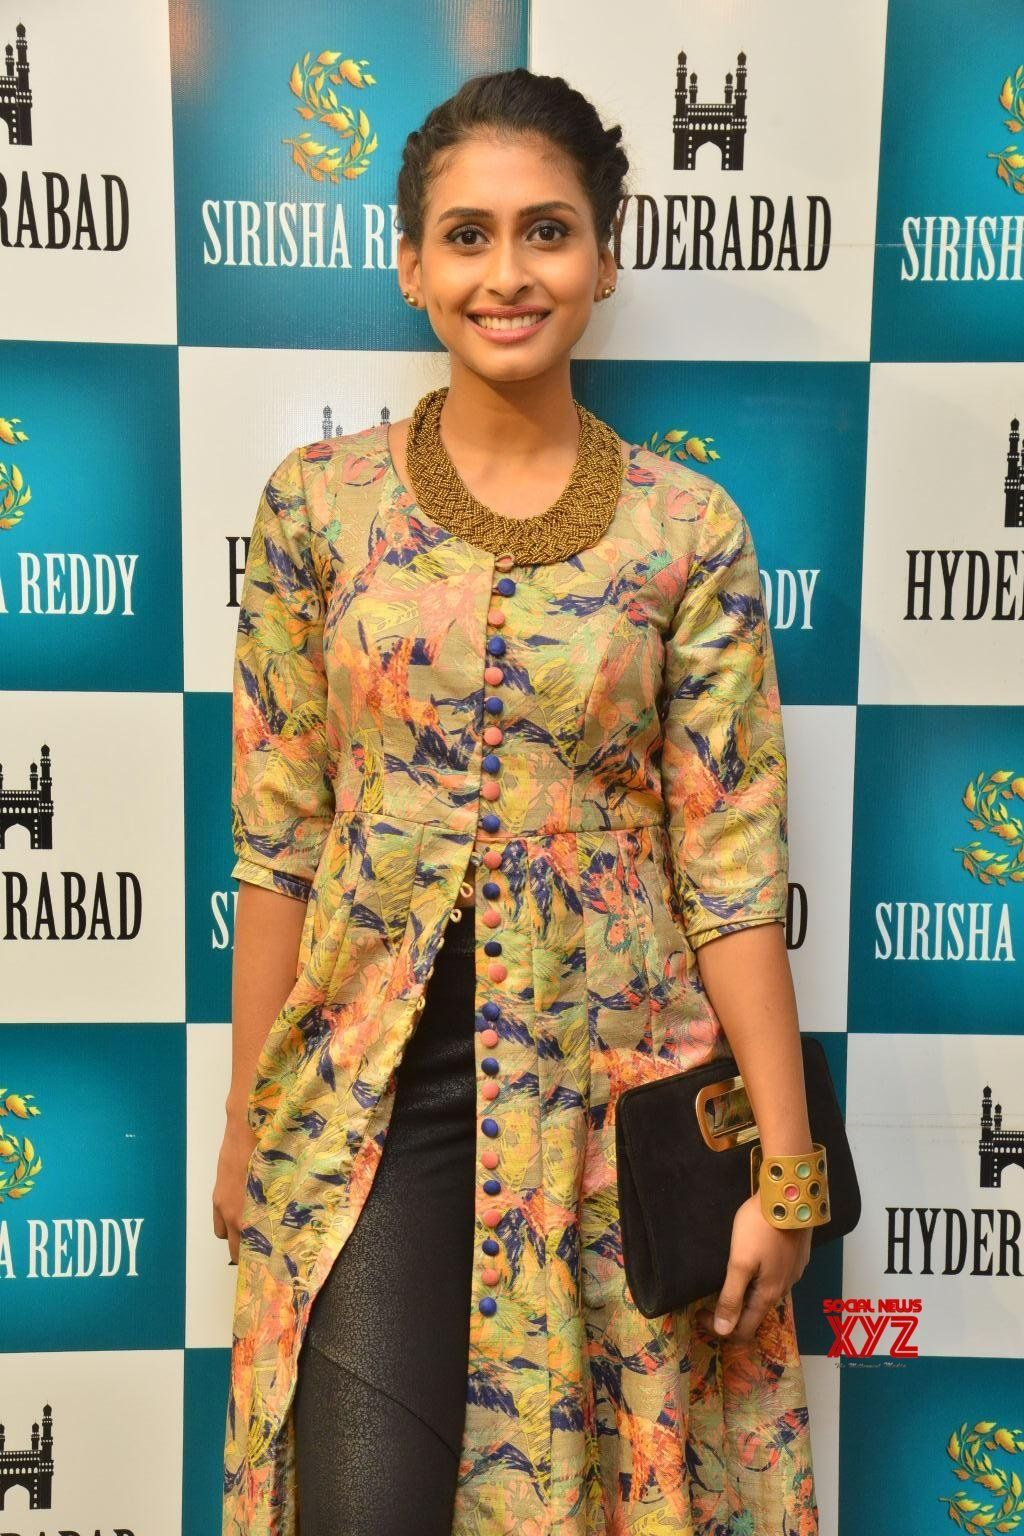 0c6bd778a4 Actress Nithya Naresh Stills From Sirisha Reddy Boutique 1st Year  Anniversary Celebration - Social News XYZ Actress #NithyaNaresh Stills From  #SirishaReddy ...